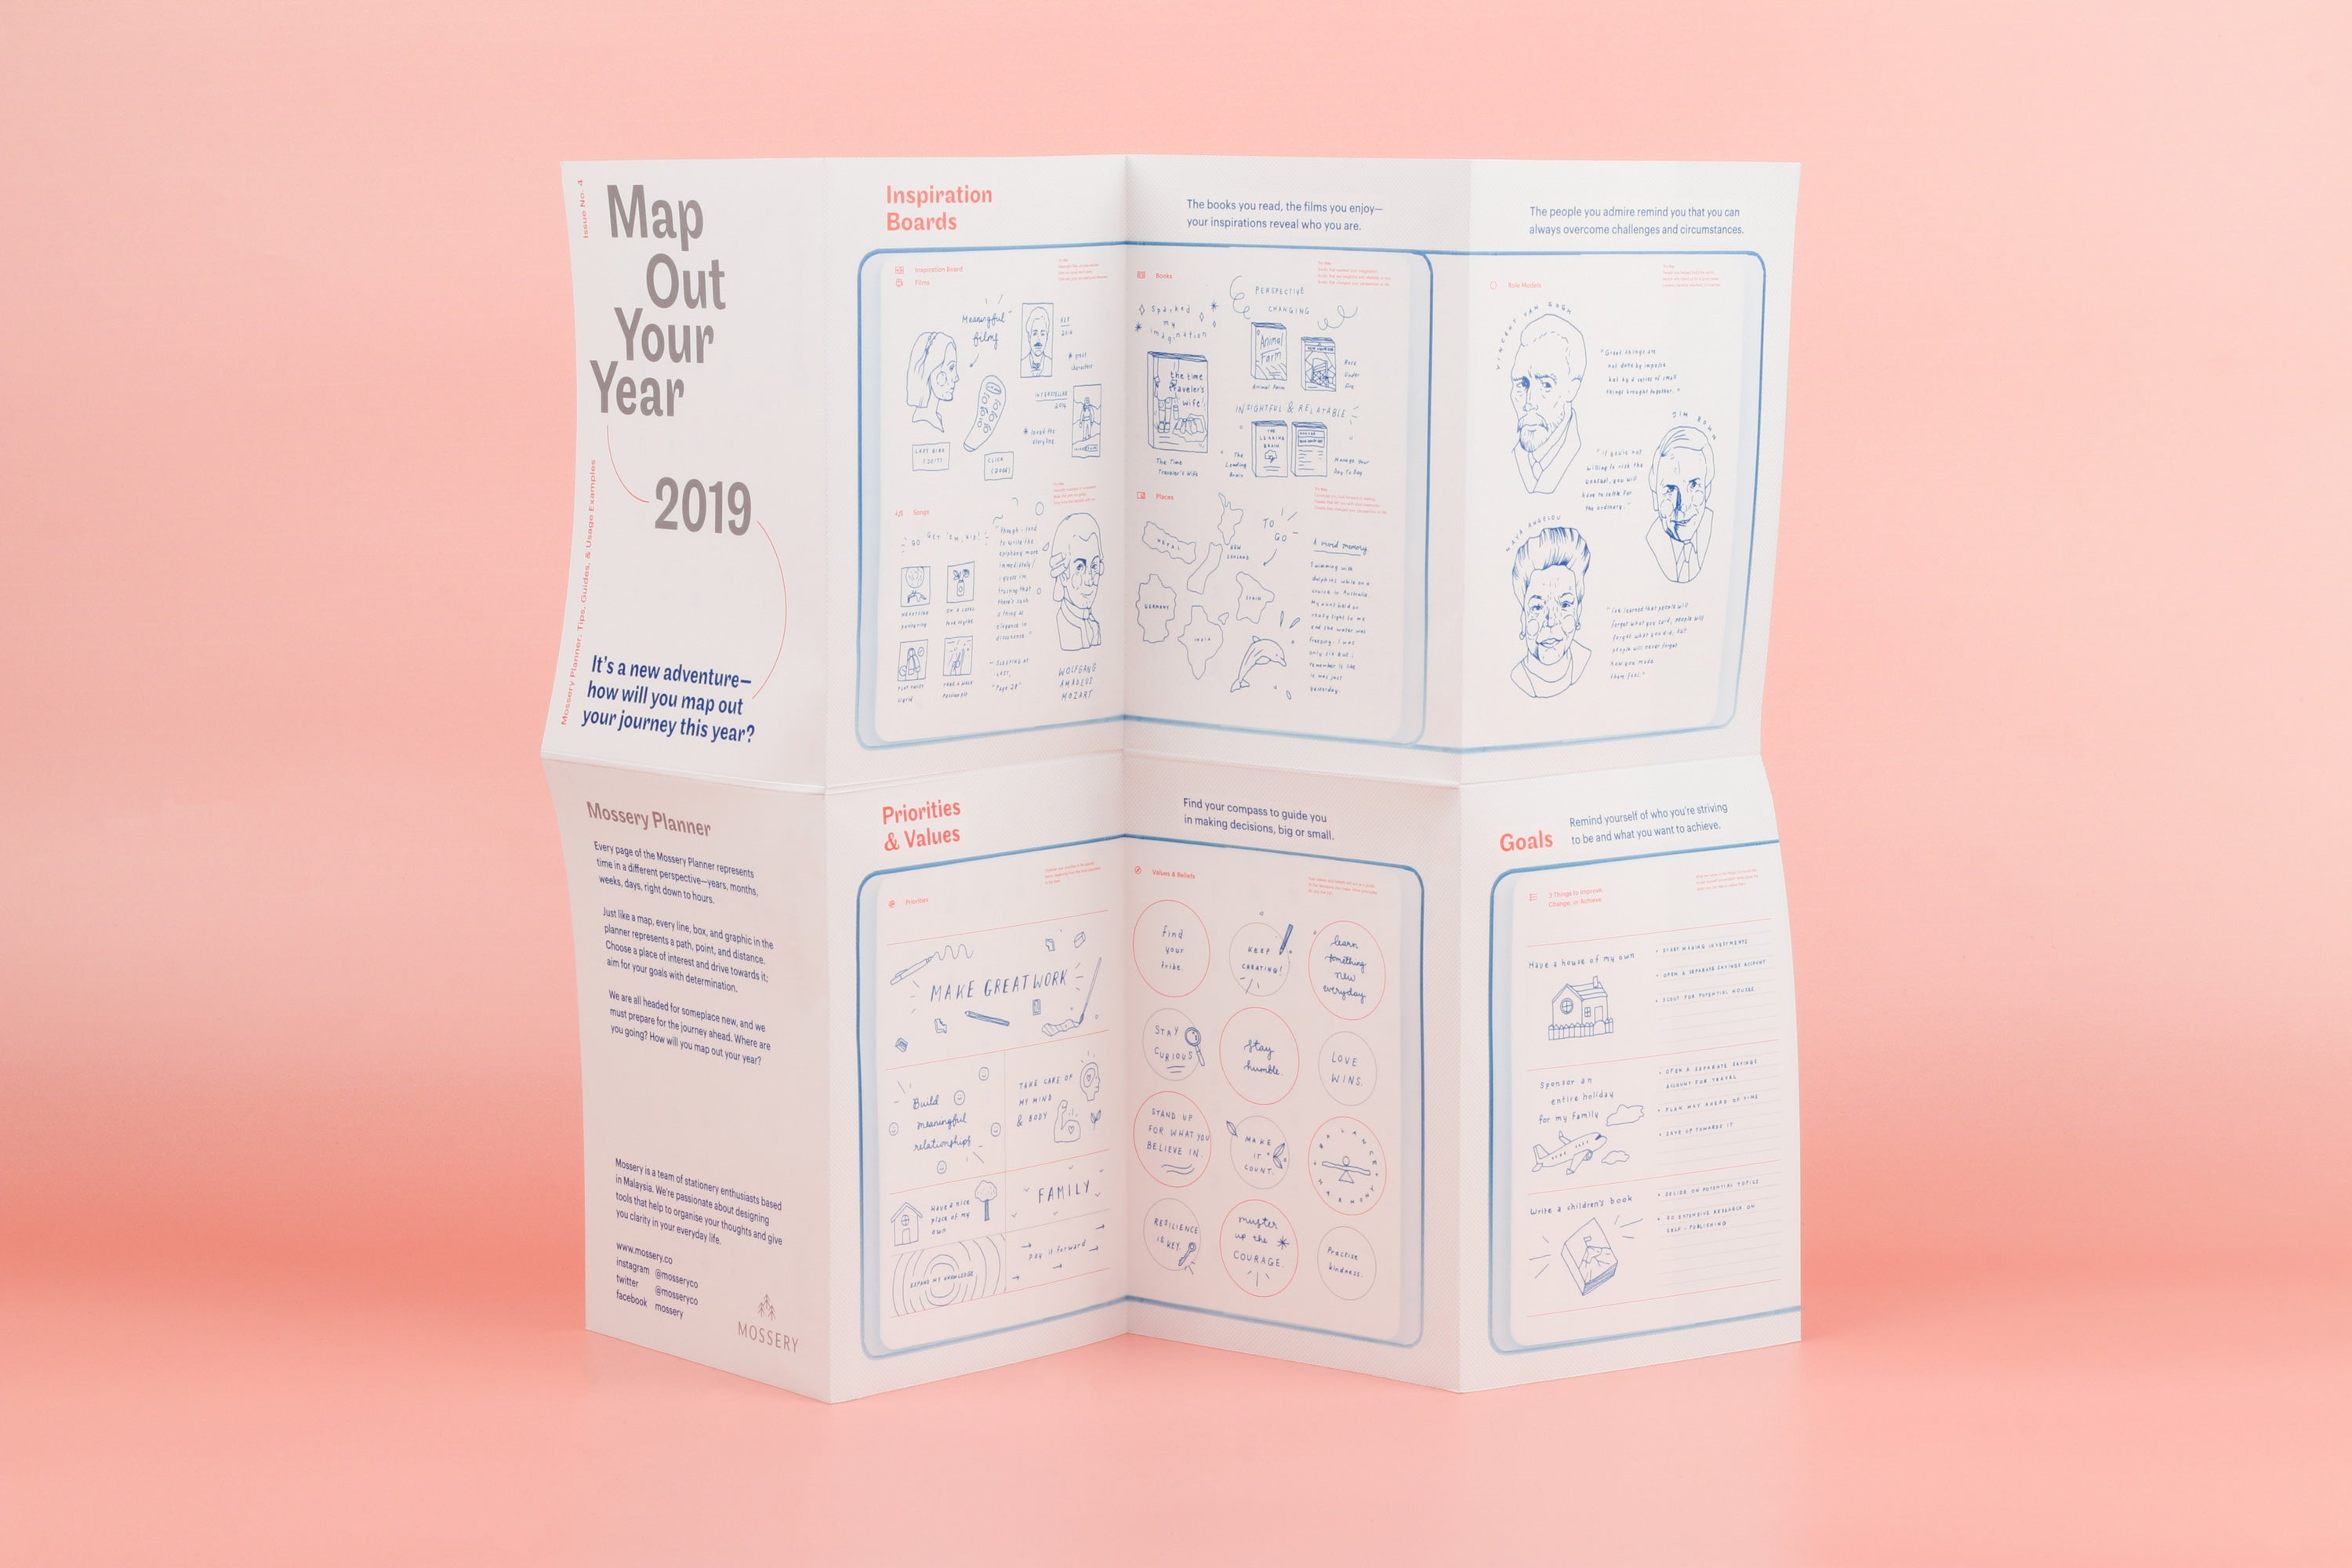 2019 Planner: Tips, Guides, and Usage Examples Zine | News